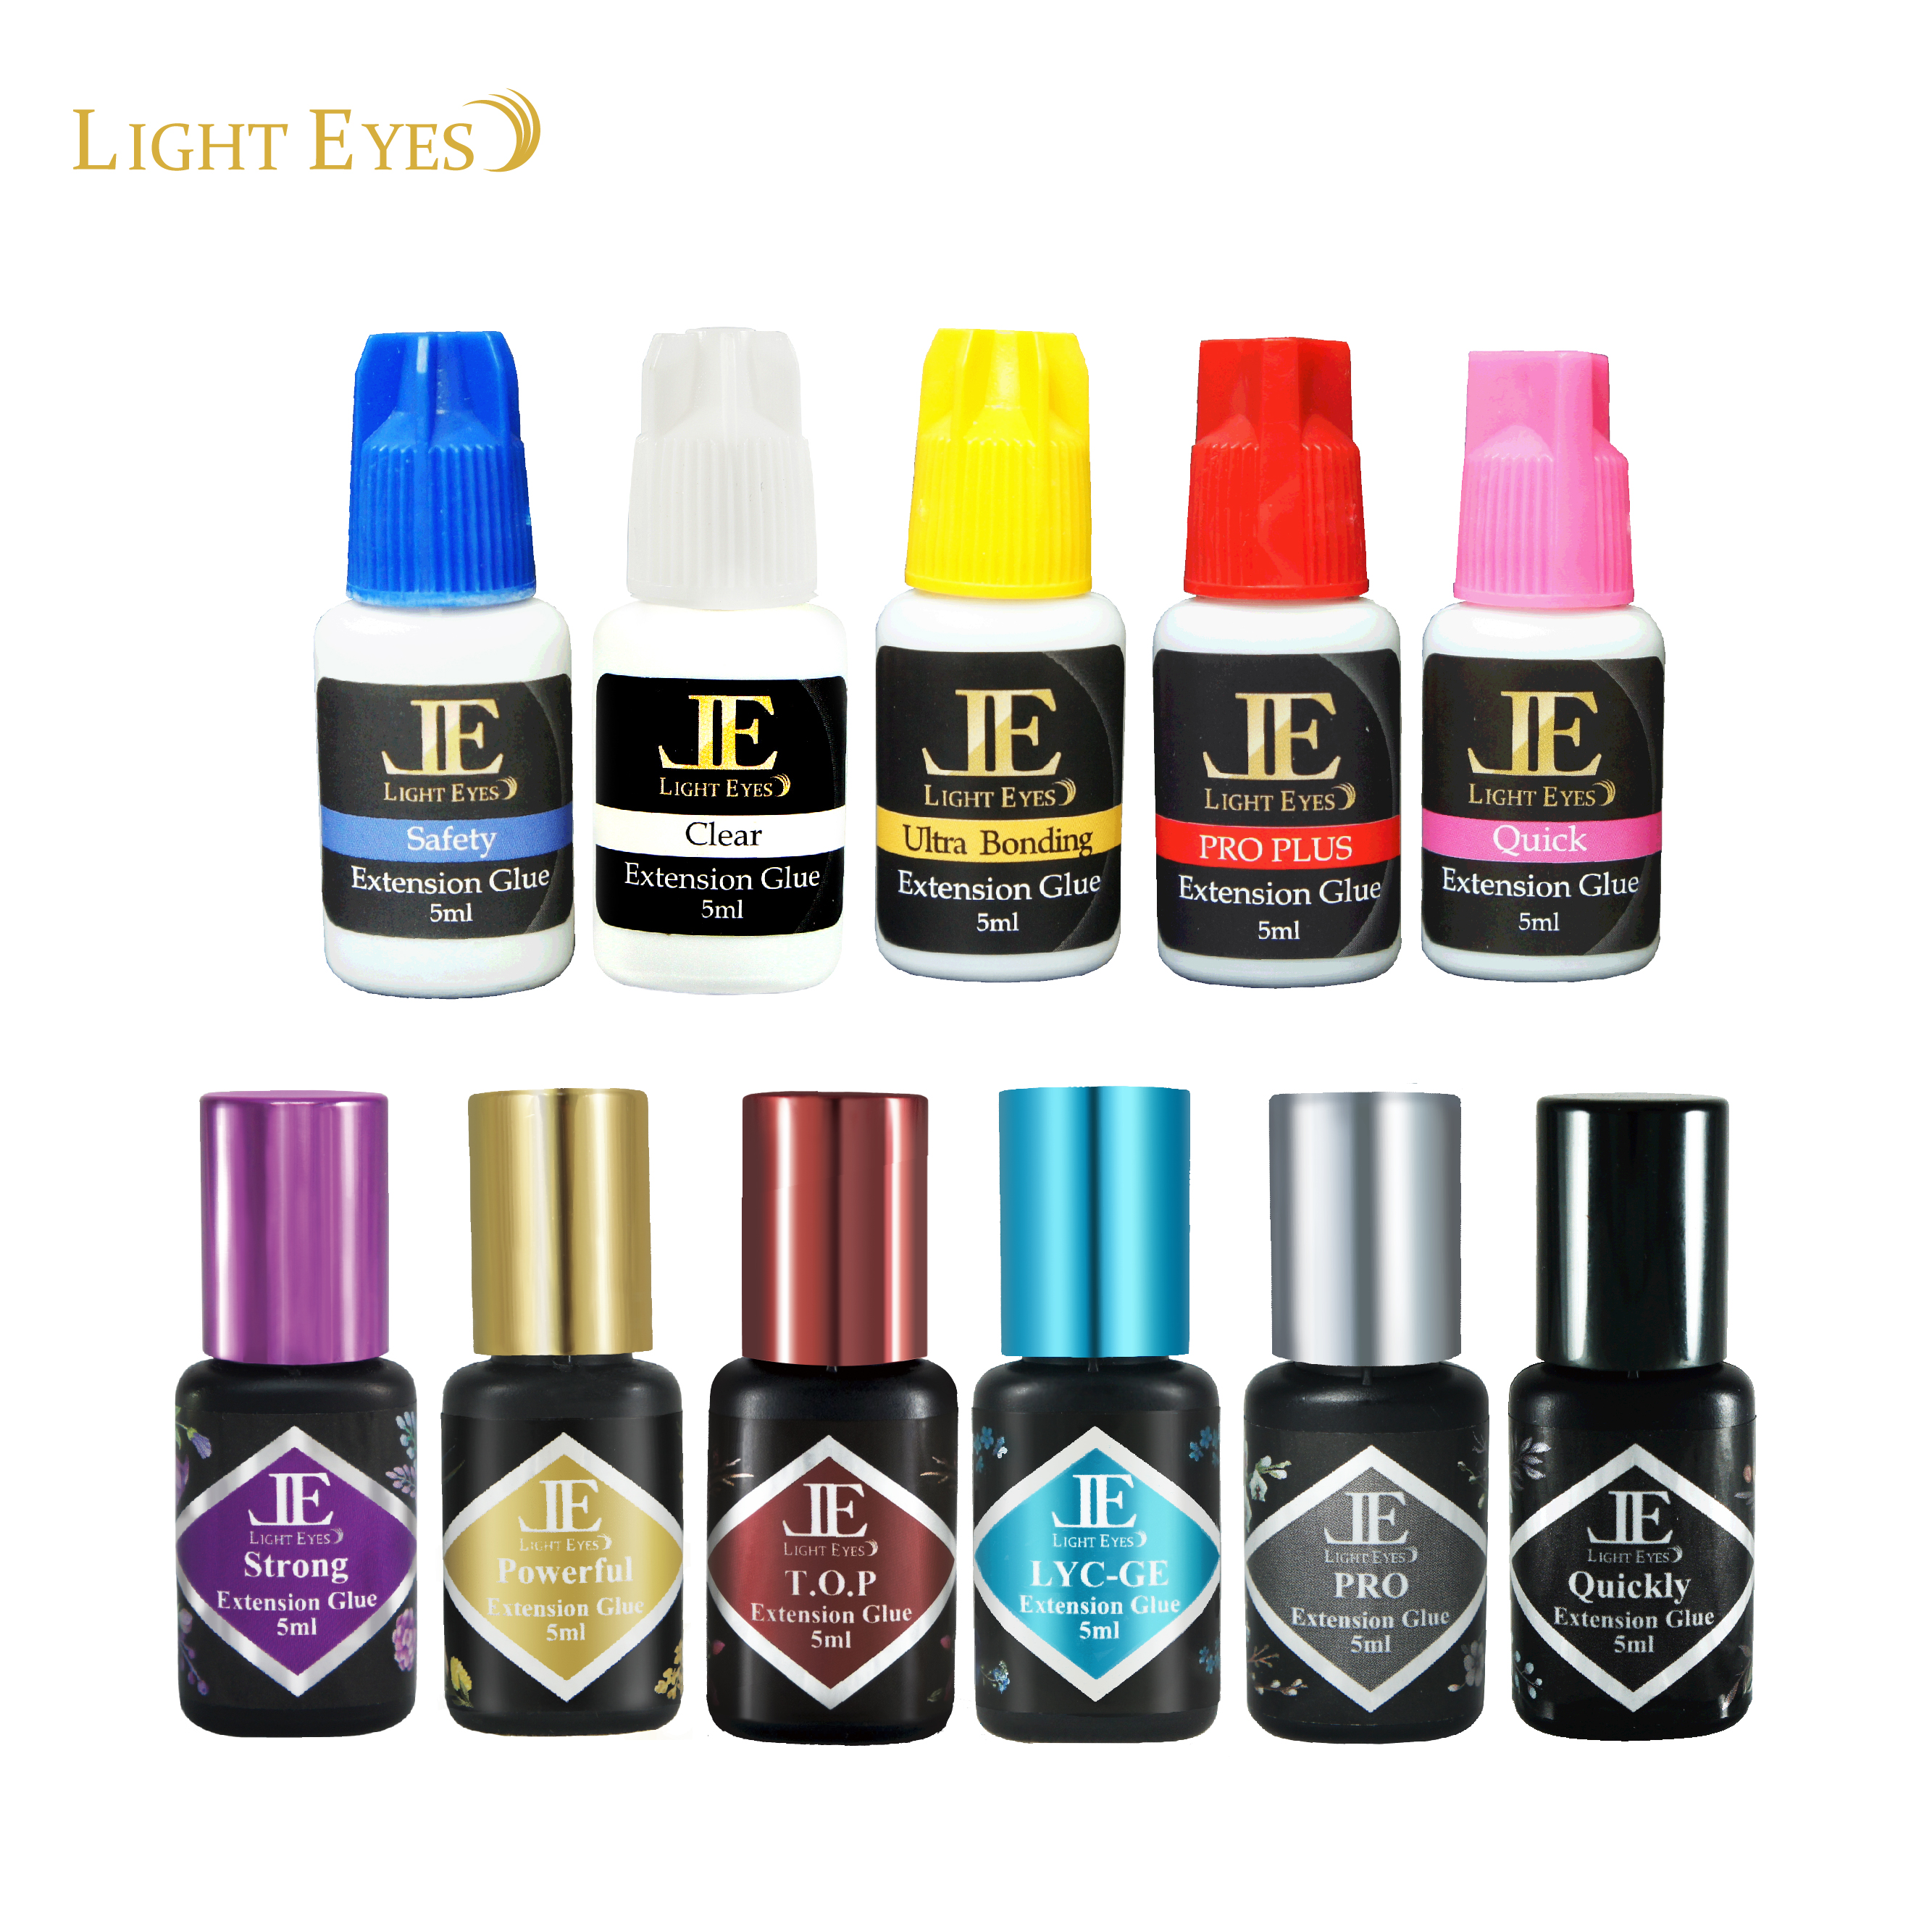 LIGHTEYES TOP Wimpers Lijm laatste 6-8 Weken/sneldrogende 0.5 ~ 1.5 Sec/Professionele lash Adhesive /5 ml